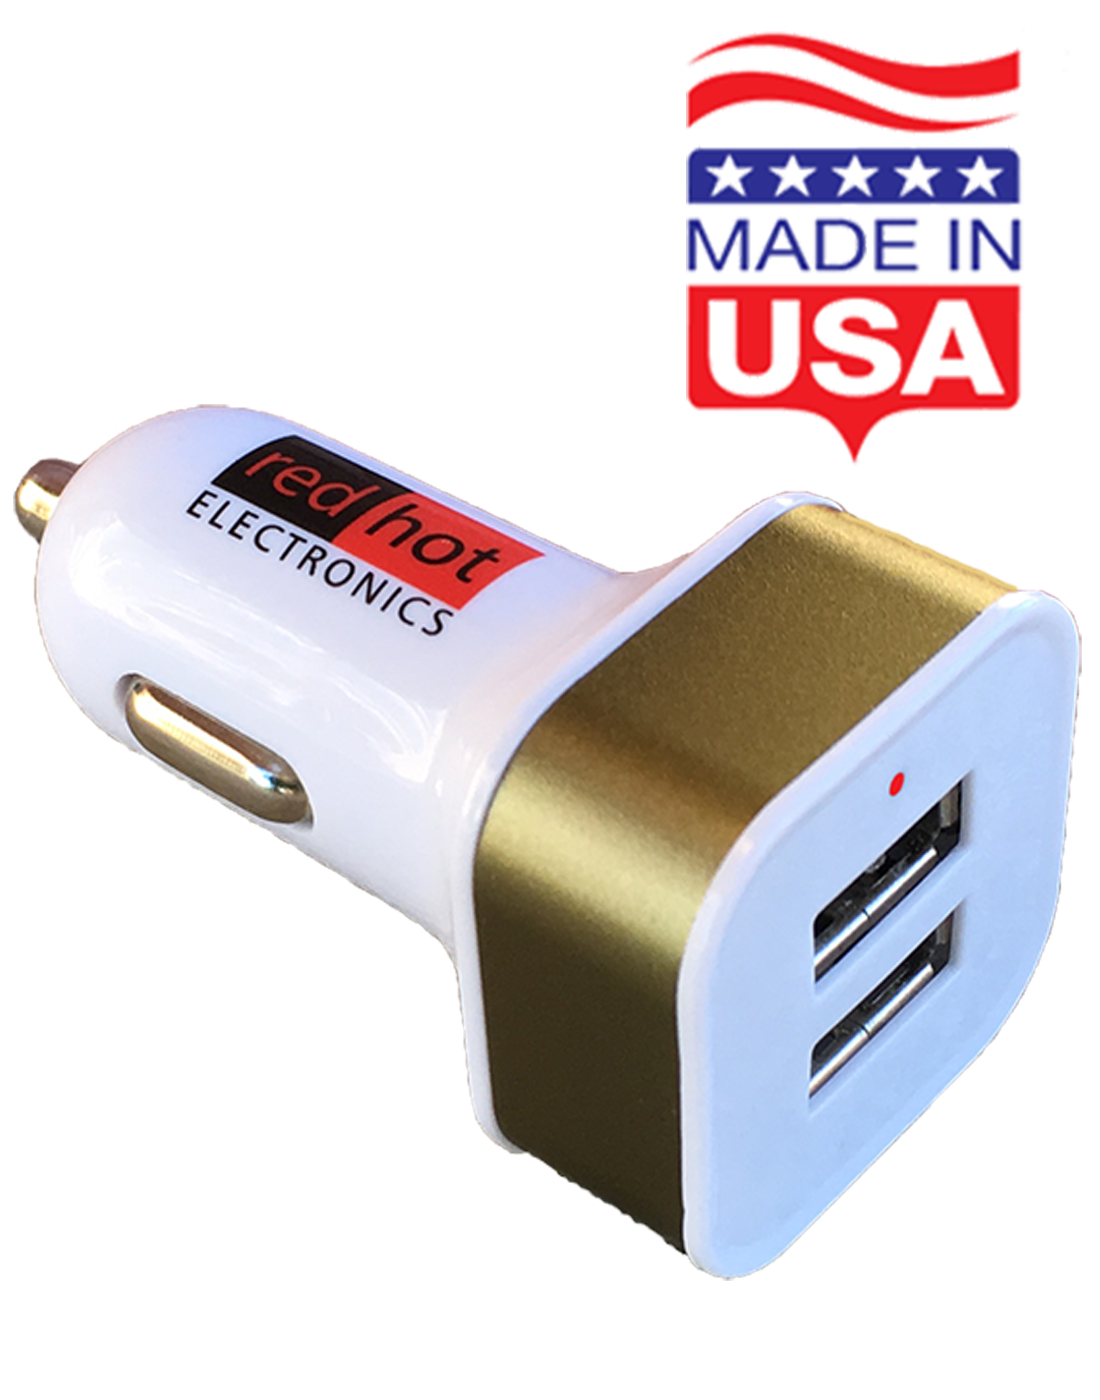 *MADE IN USA* Smart Dual USB Car Charger 24W iPhone11 12 Samsung LG Android Gold